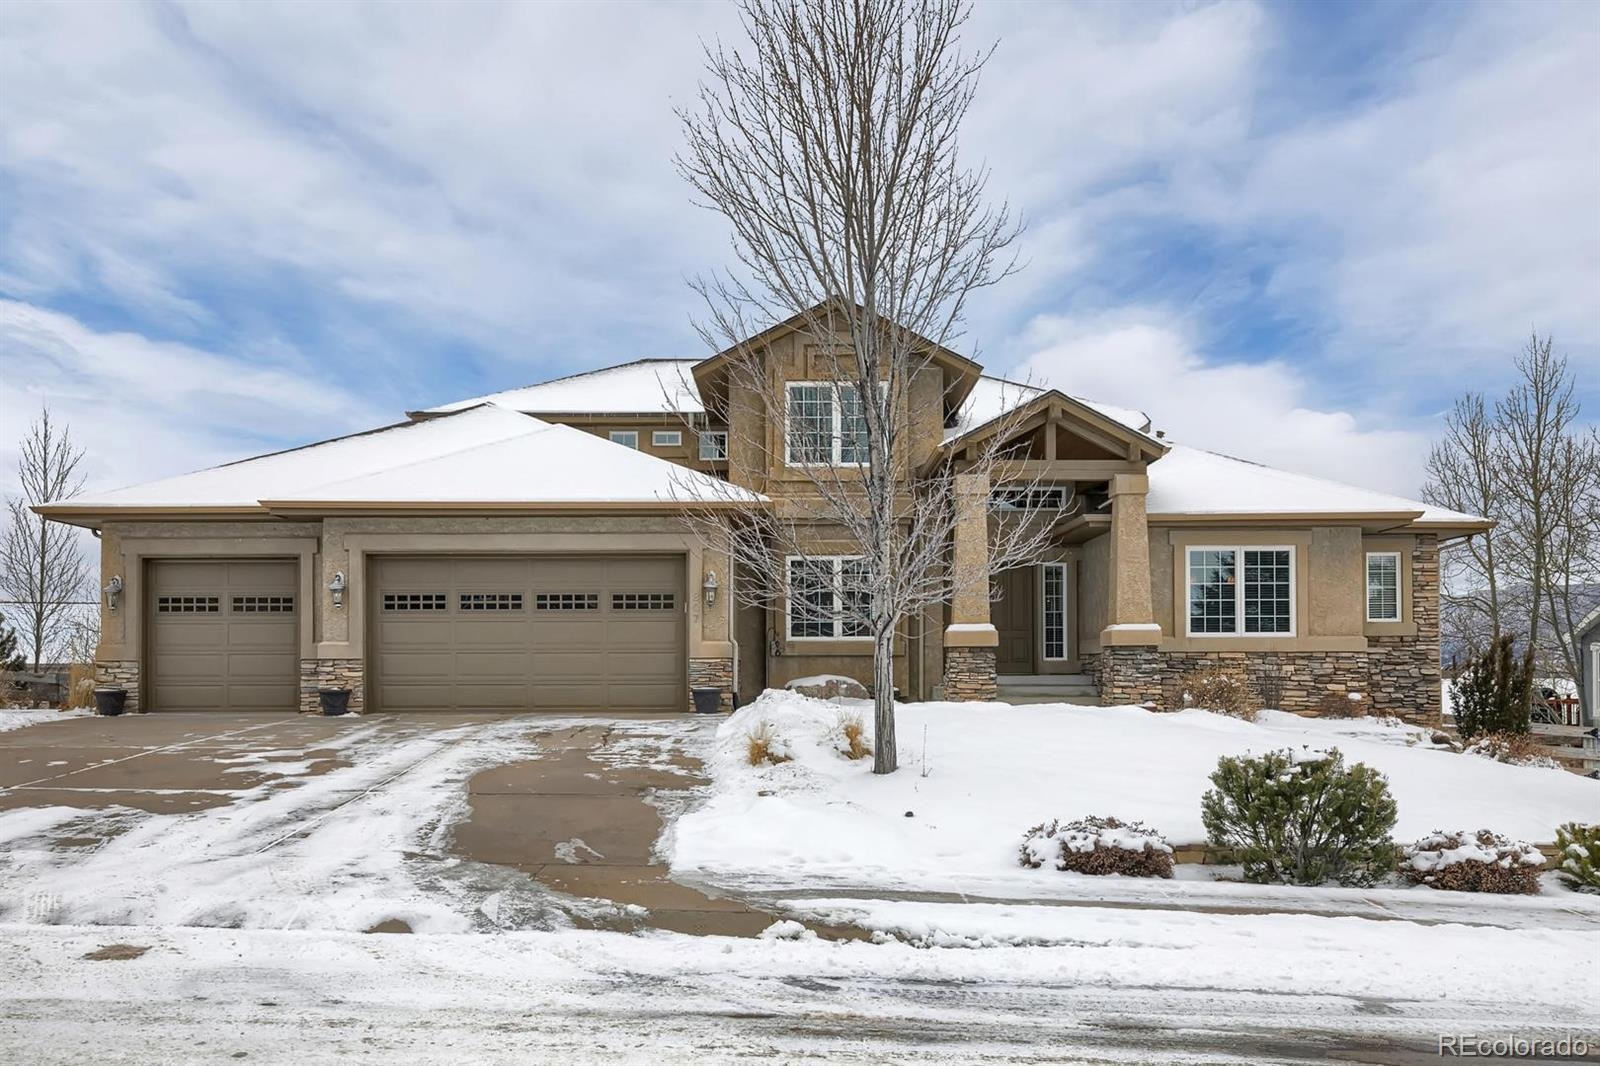 MLS# 5159811 - 2 - 207 Green Rock Place, Monument, CO 80132